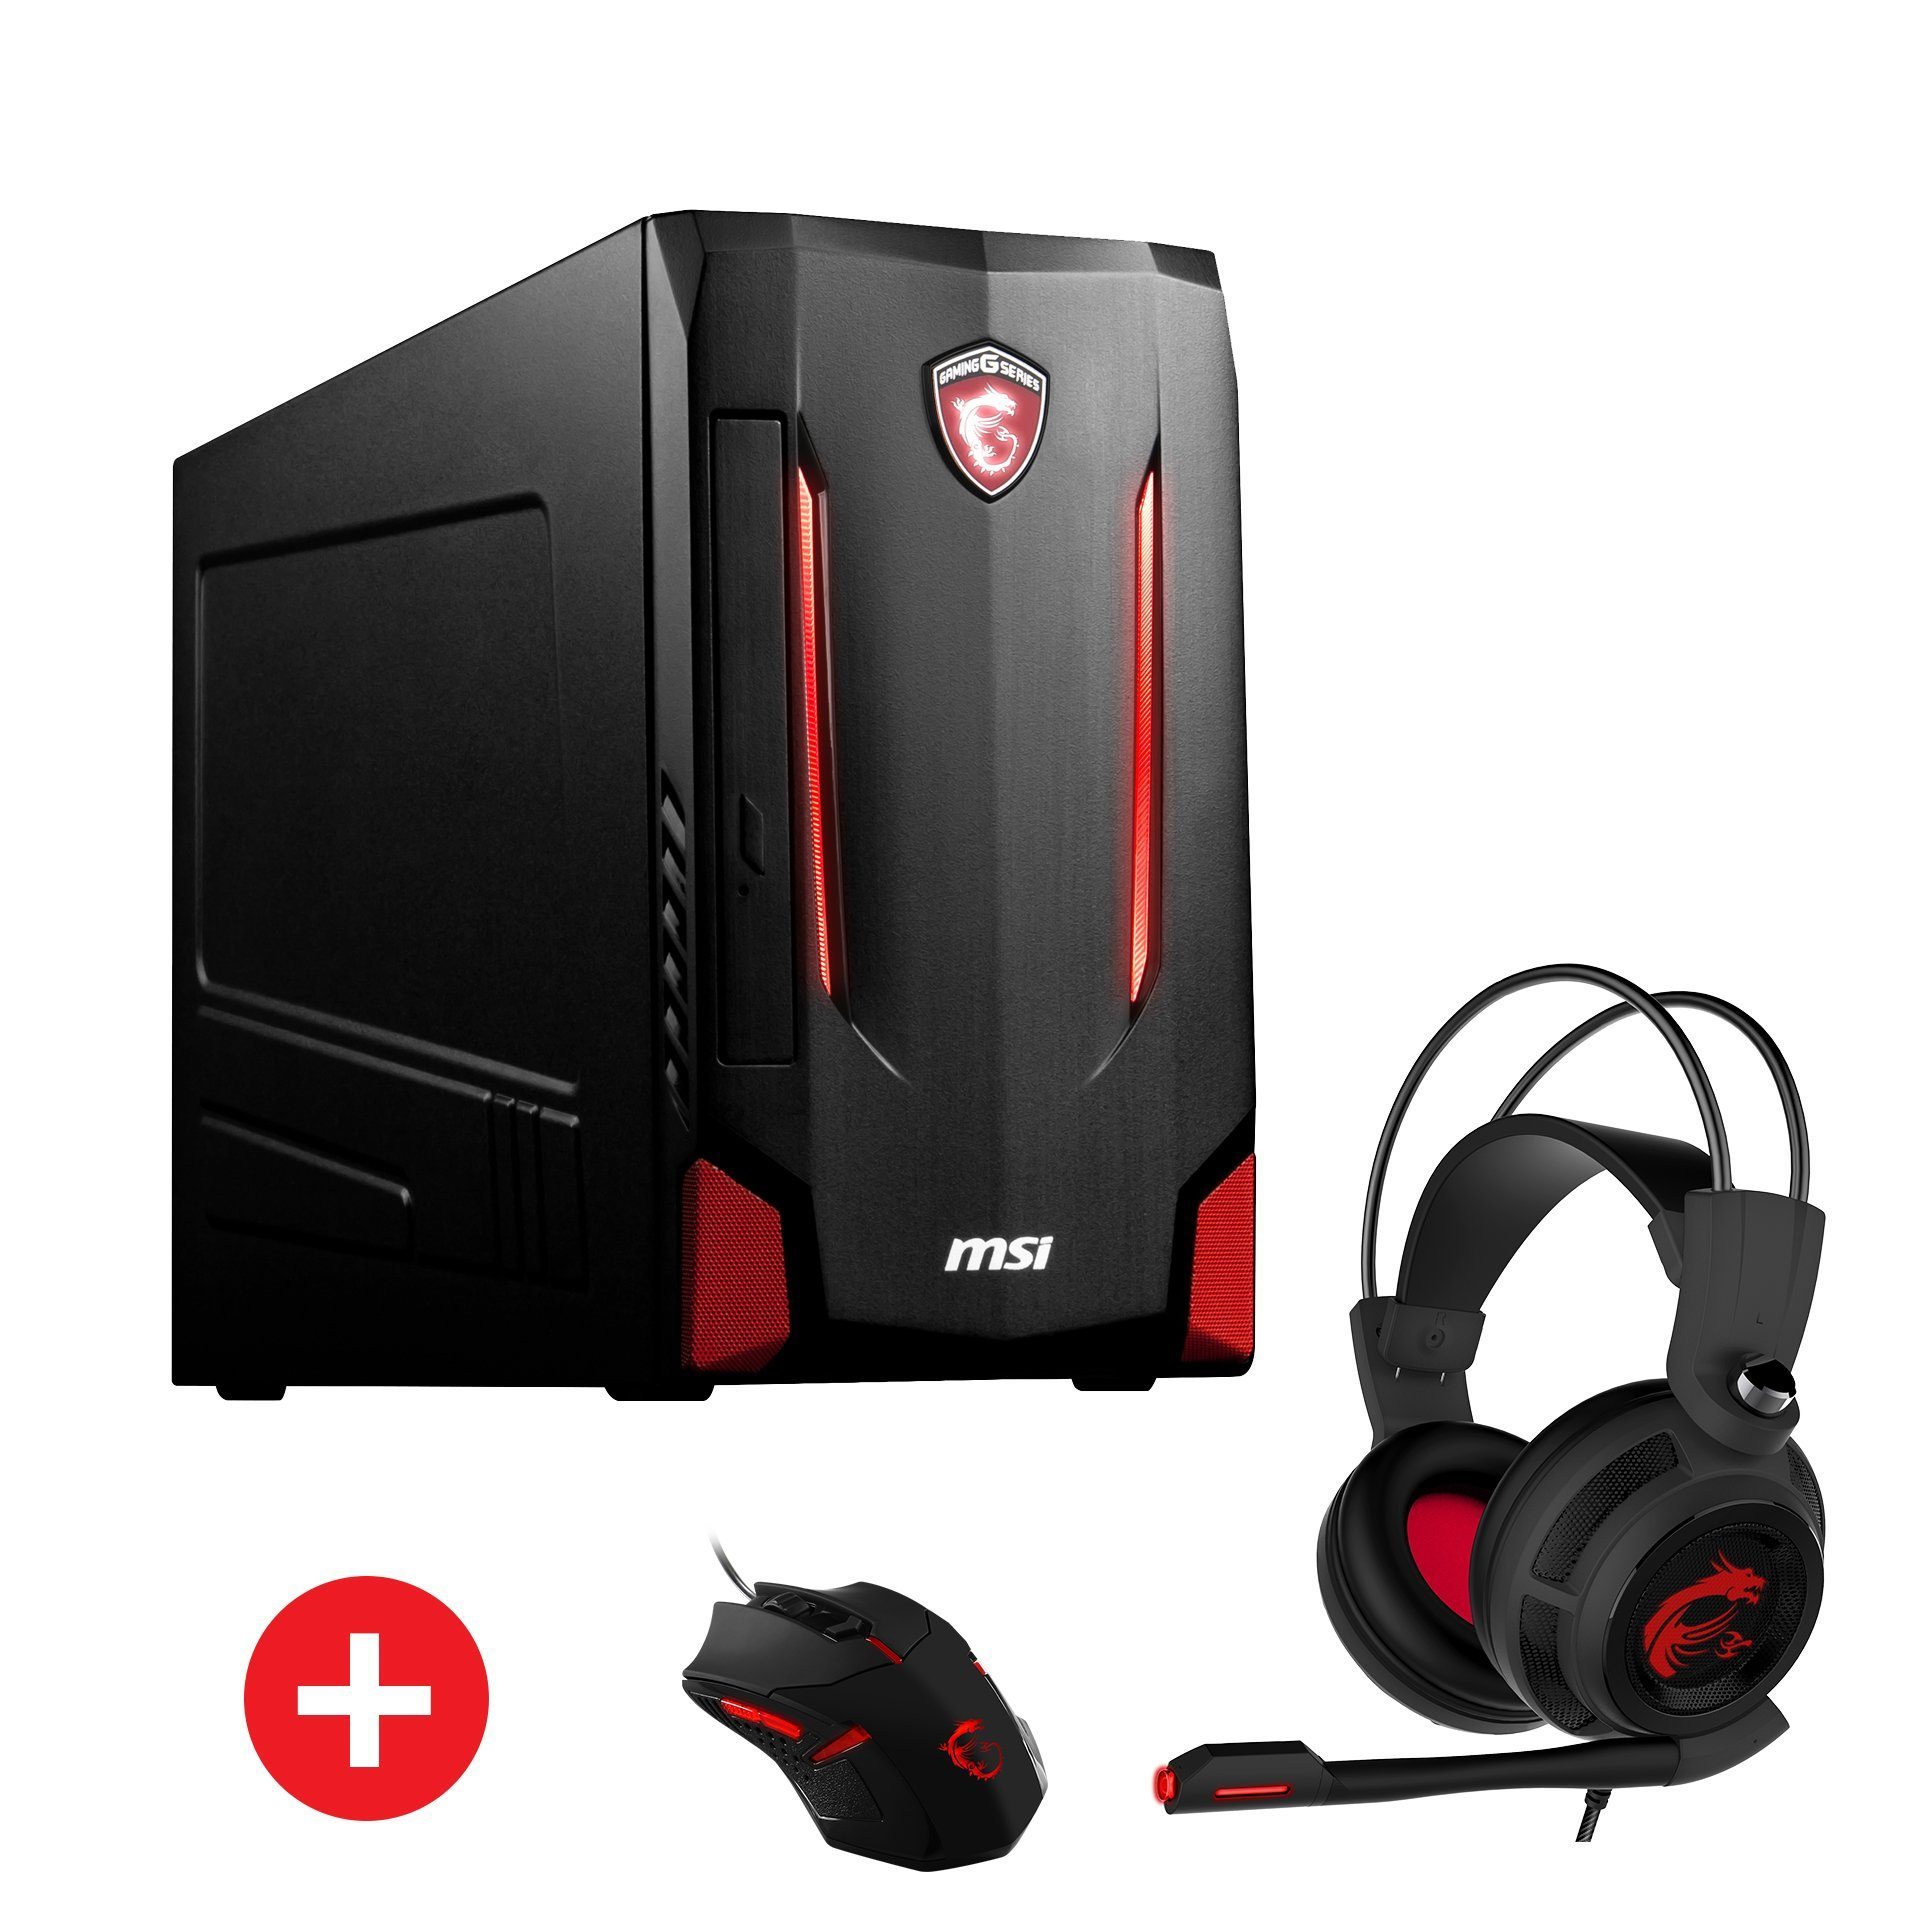 MSI Gaming PC, Intel® i7-6700, 8GB, 1TB, 128 SSD, GeForce® GTX 1070 »Nightblade MI2-209DE«